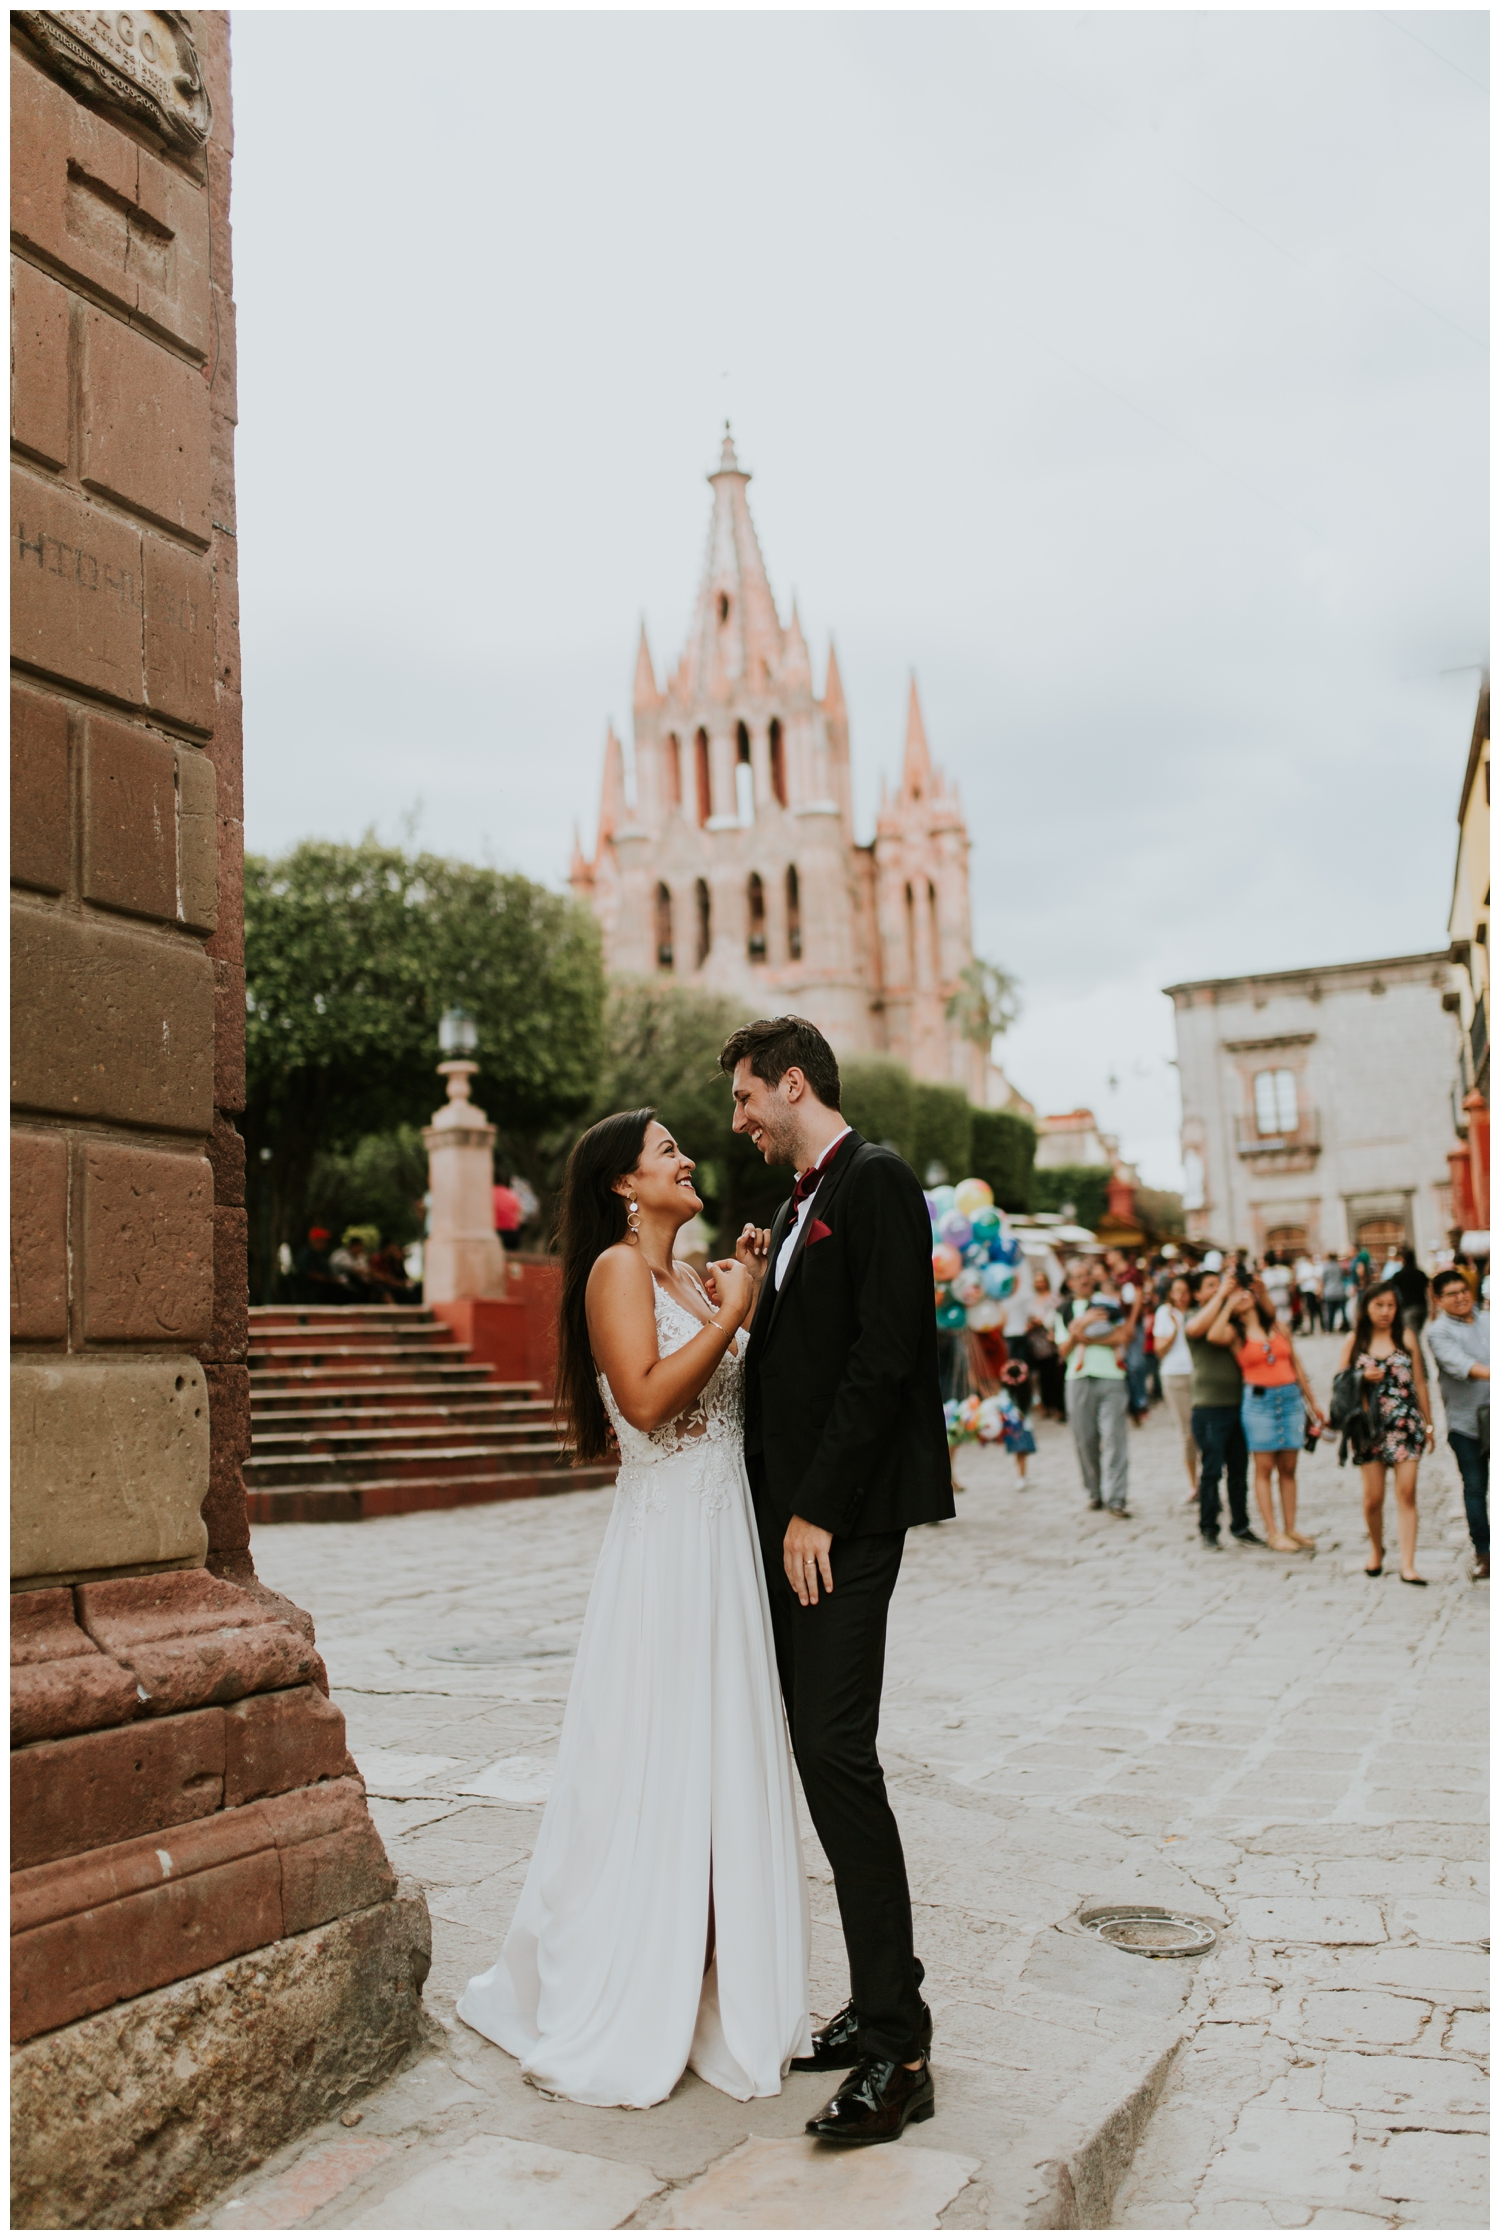 Shane+Sofia, San Miguel de Allende Wedding, Mexico Wedding, Contista Productions Wedding Photography_0216.jpg